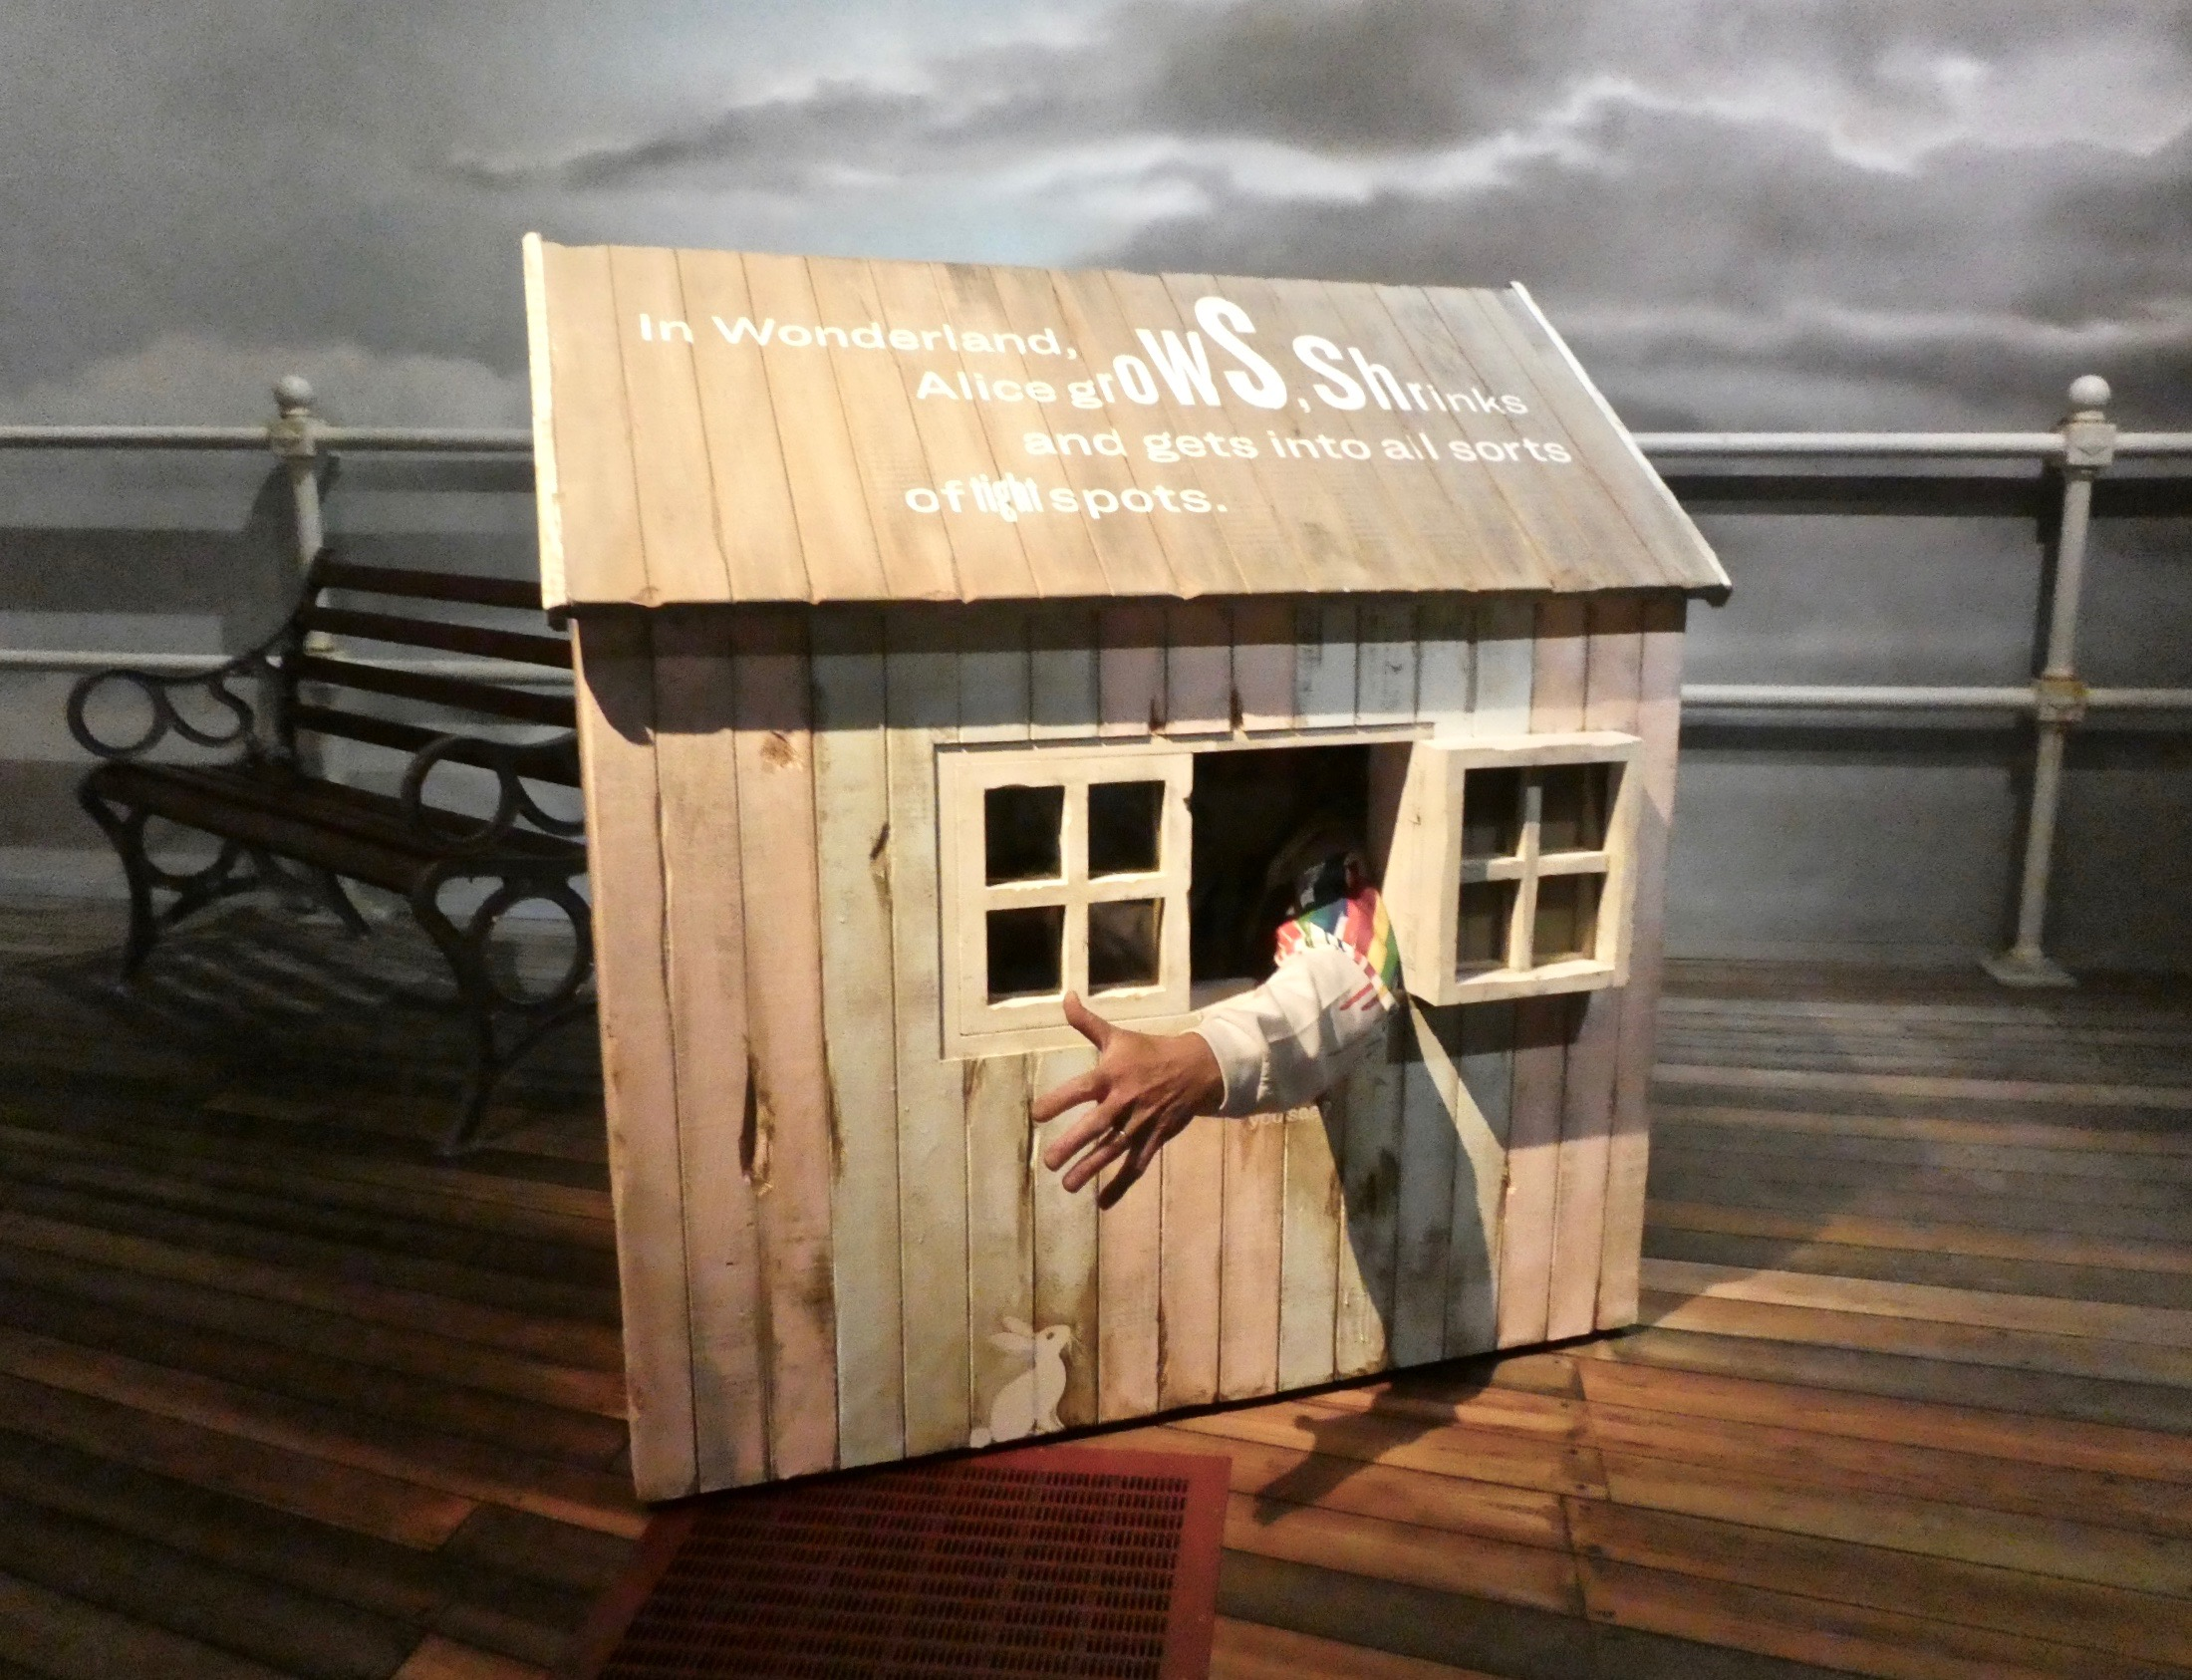 An unwary visitor gets stuck (like Alice) in White Rabbit's house!